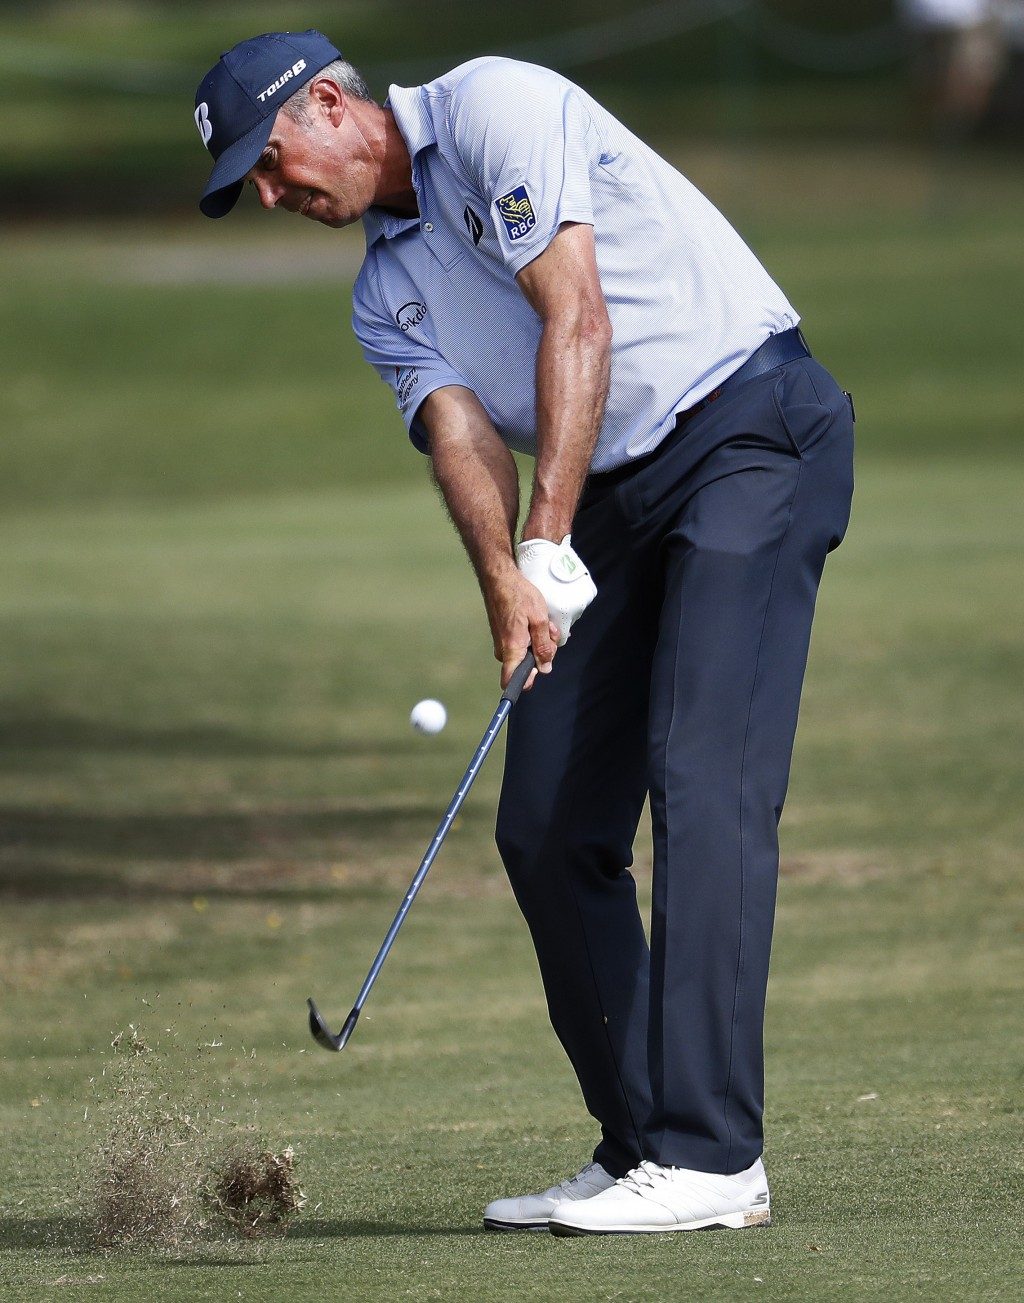 Matt Kuchar hits from the third fairway during the third round of the Sony Open PGA Tour golf event, Saturday, Jan. 12, 2019, at Waialae Country Club